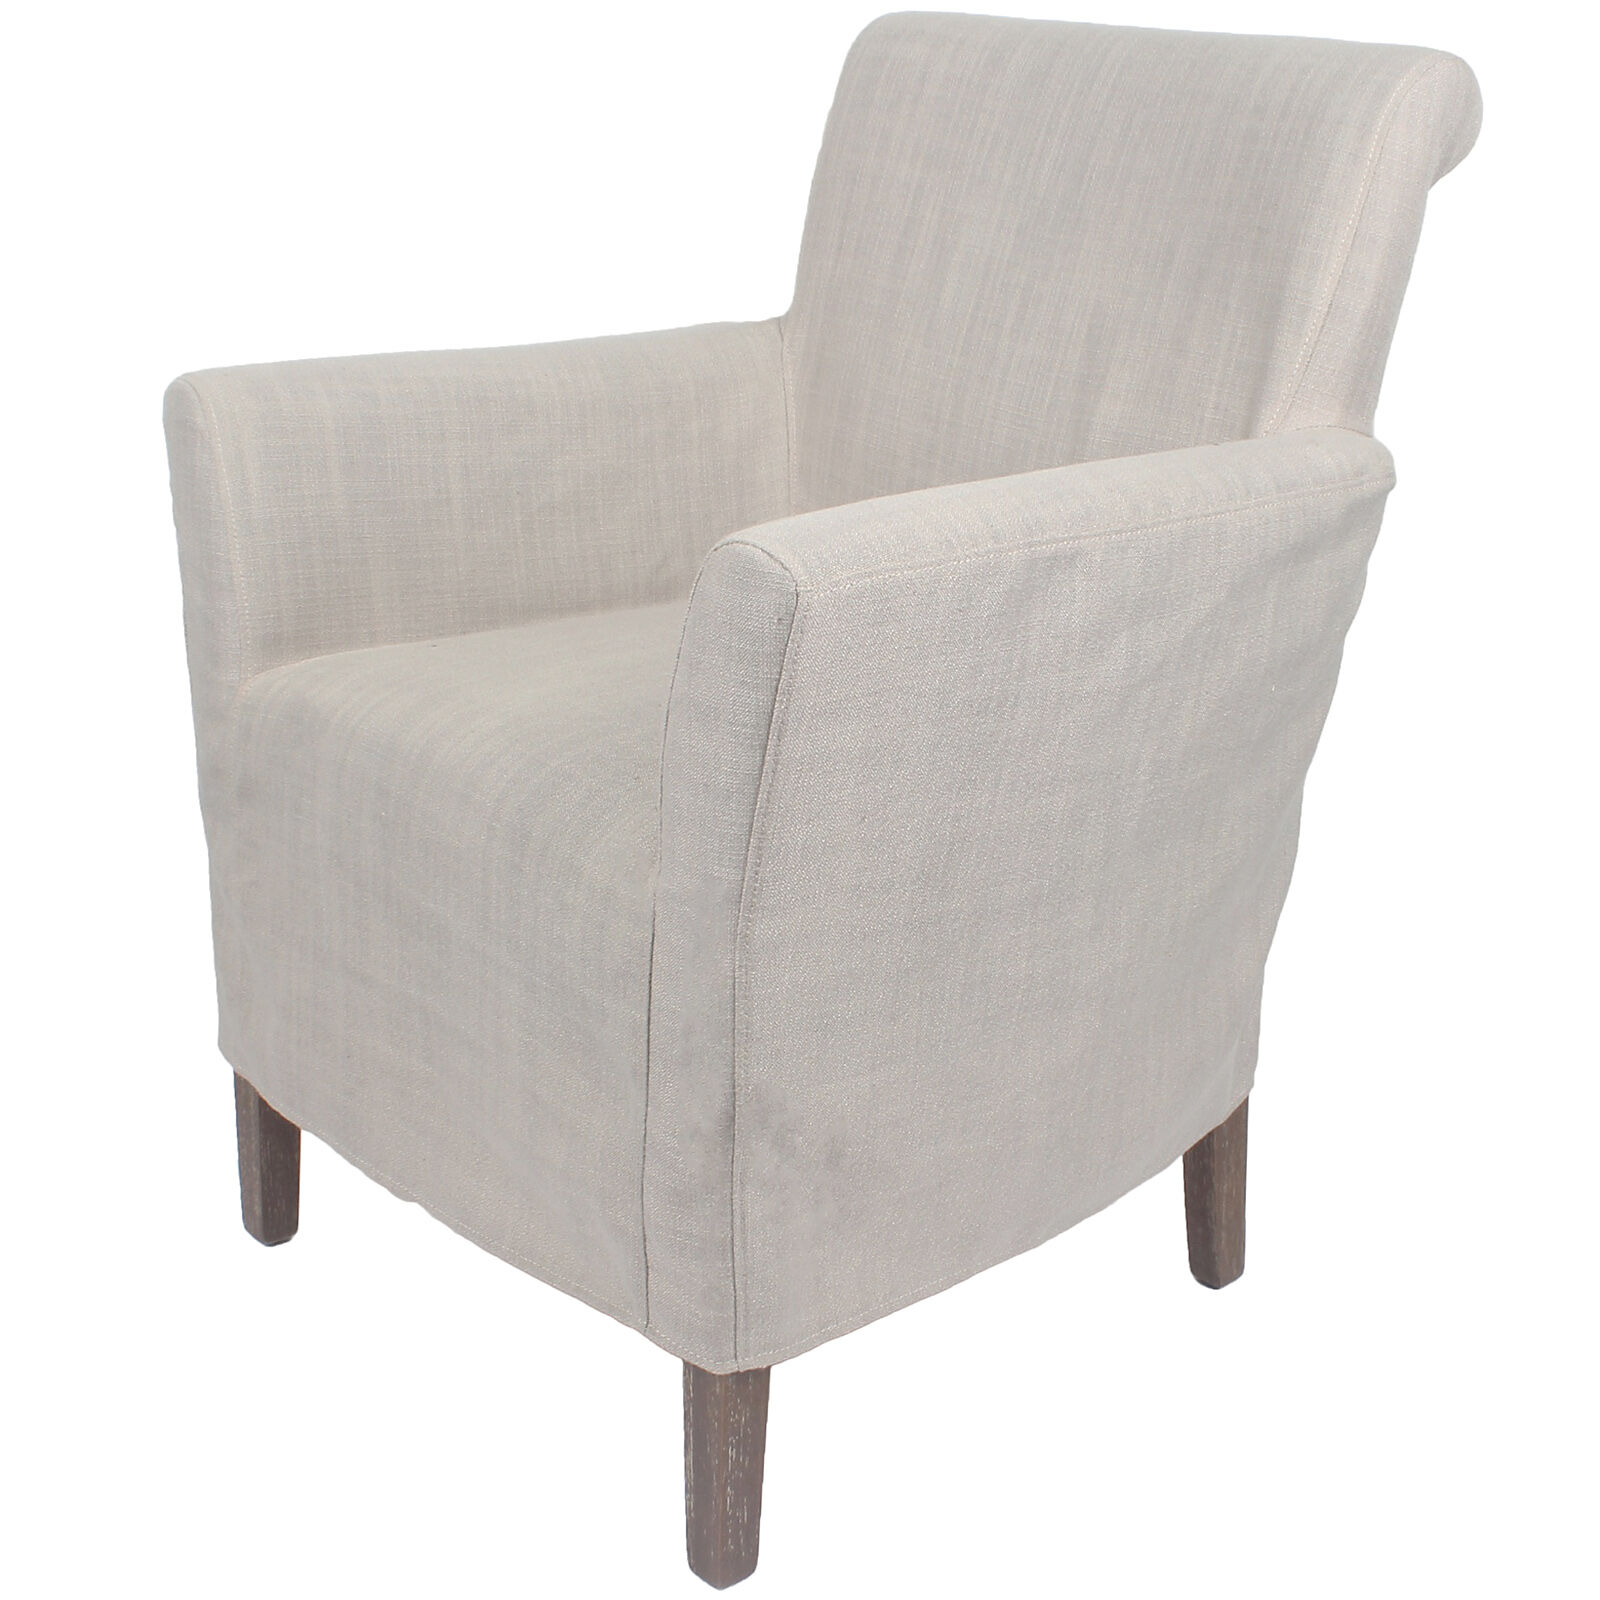 Slip Cover For Chair Lettice Slipcover Arm Chair At Home